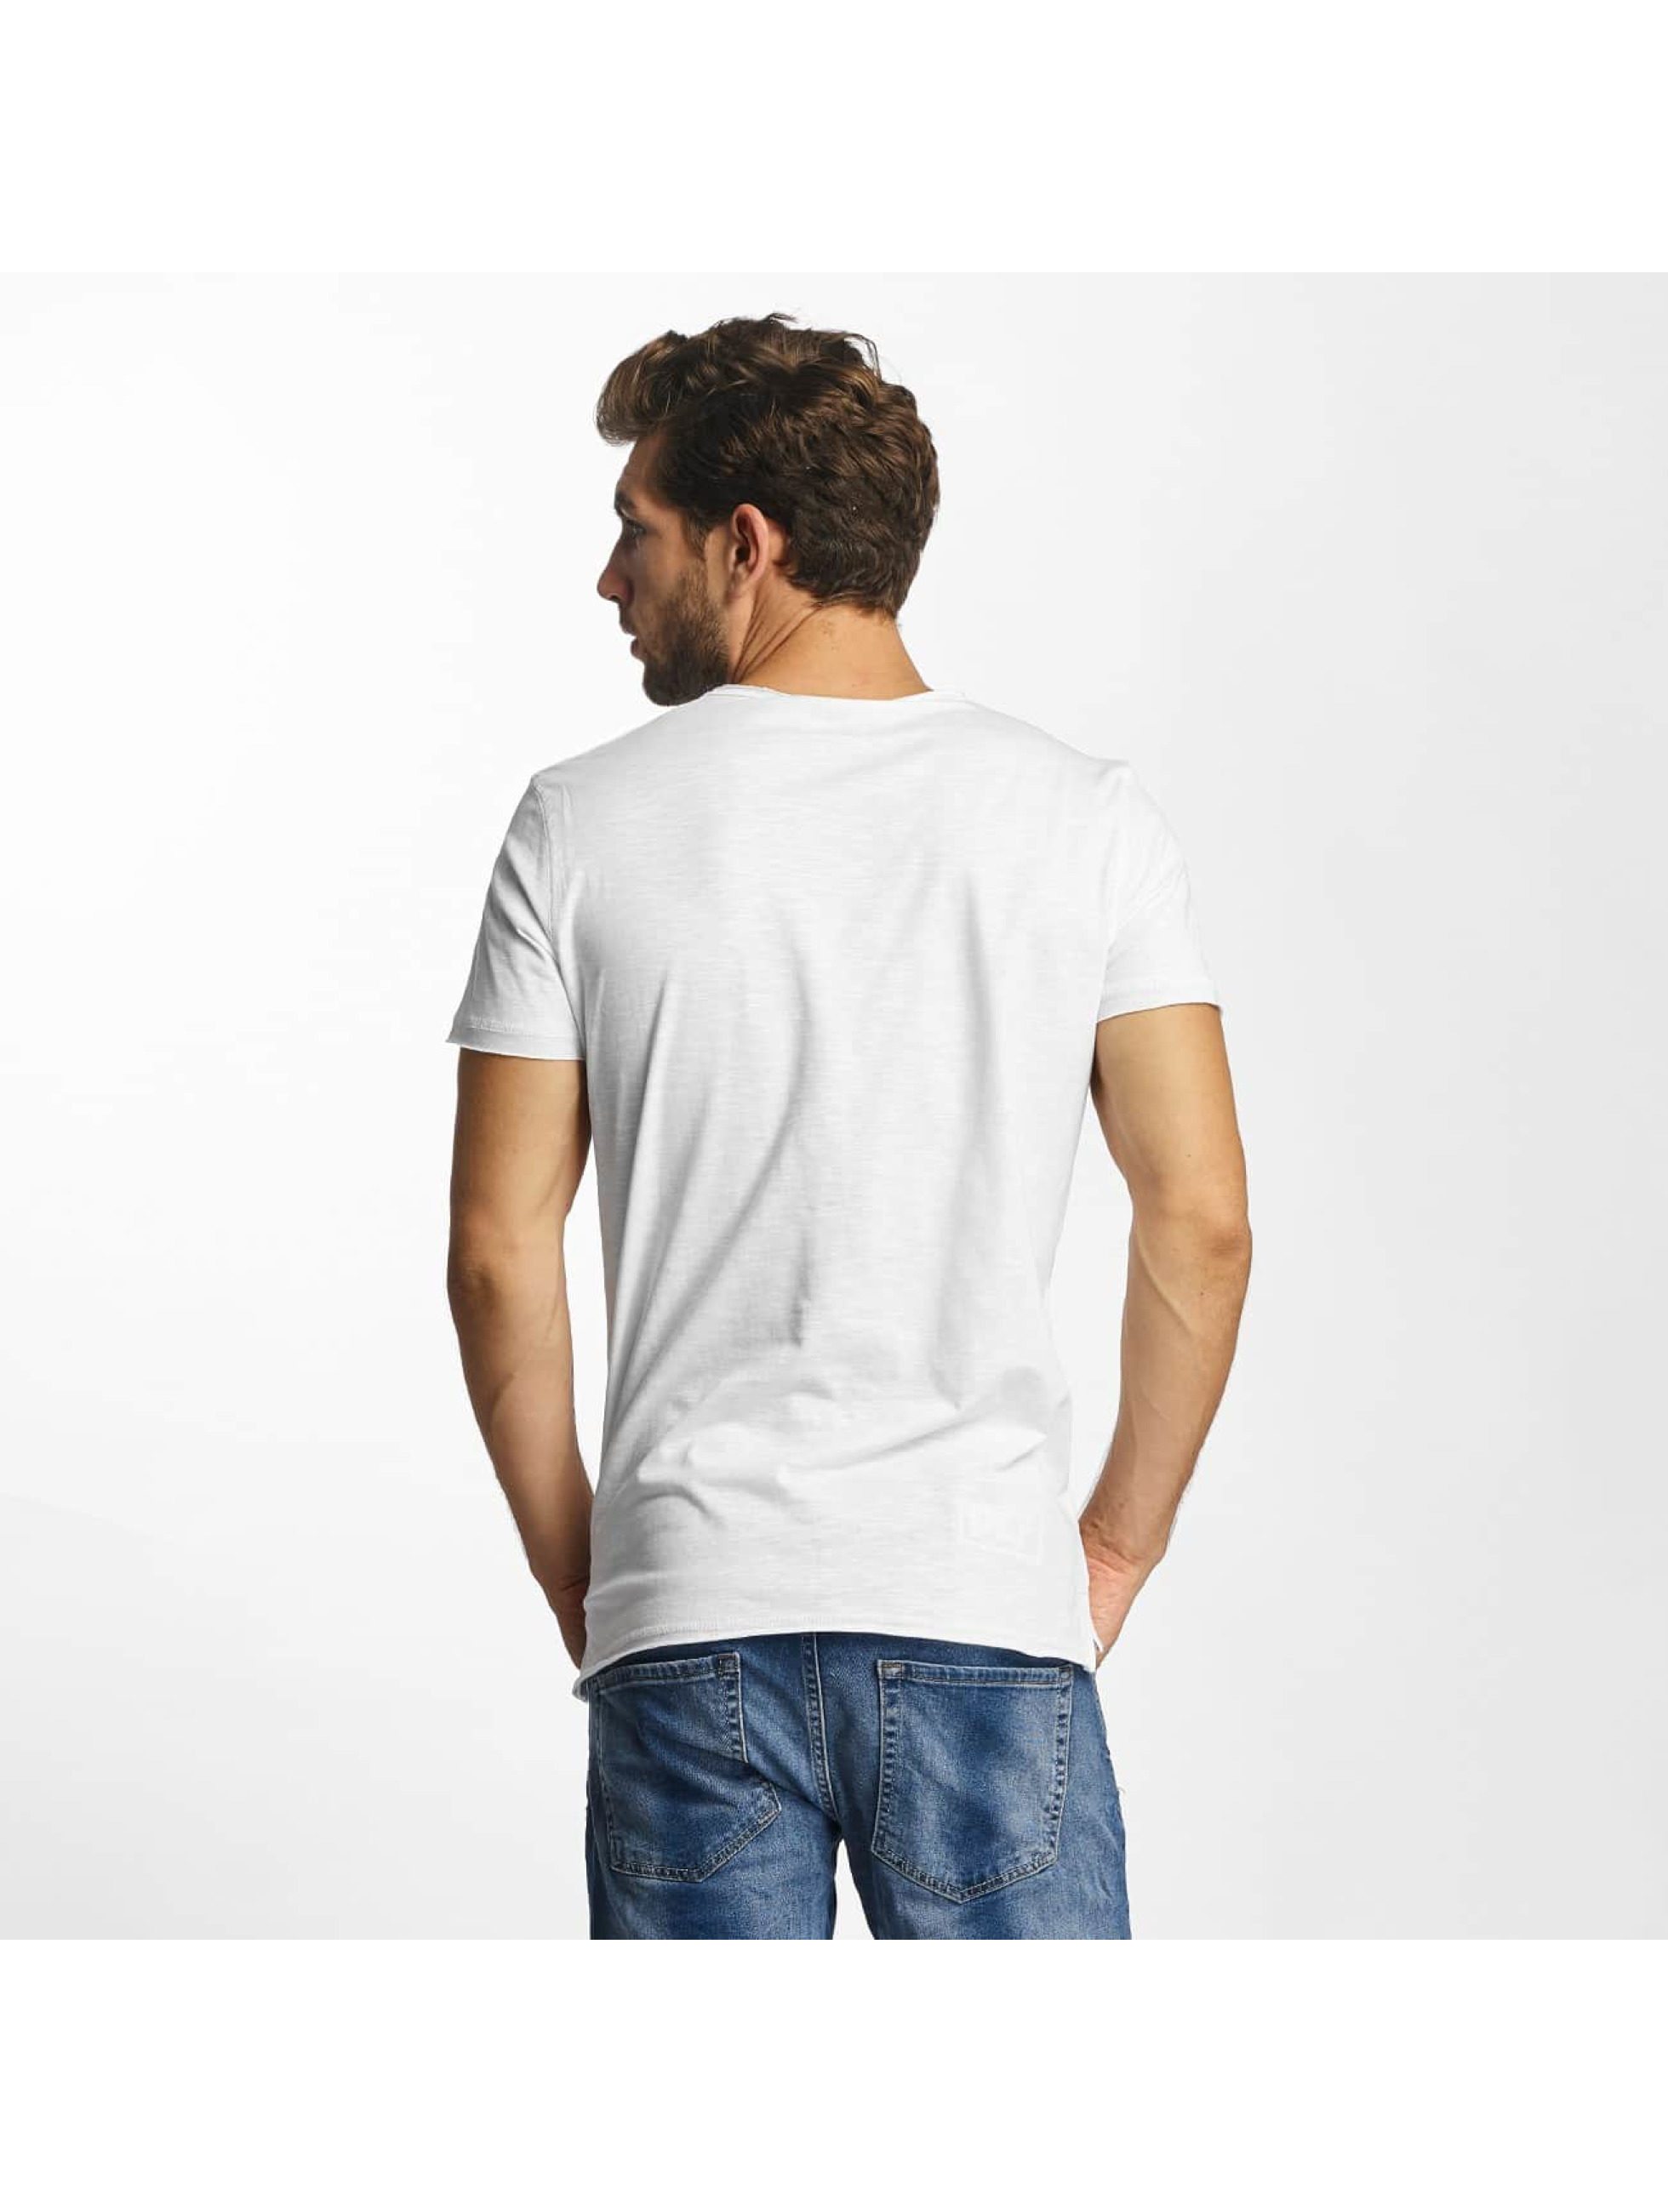 Red Bridge T-Shirt From Good To Bad white